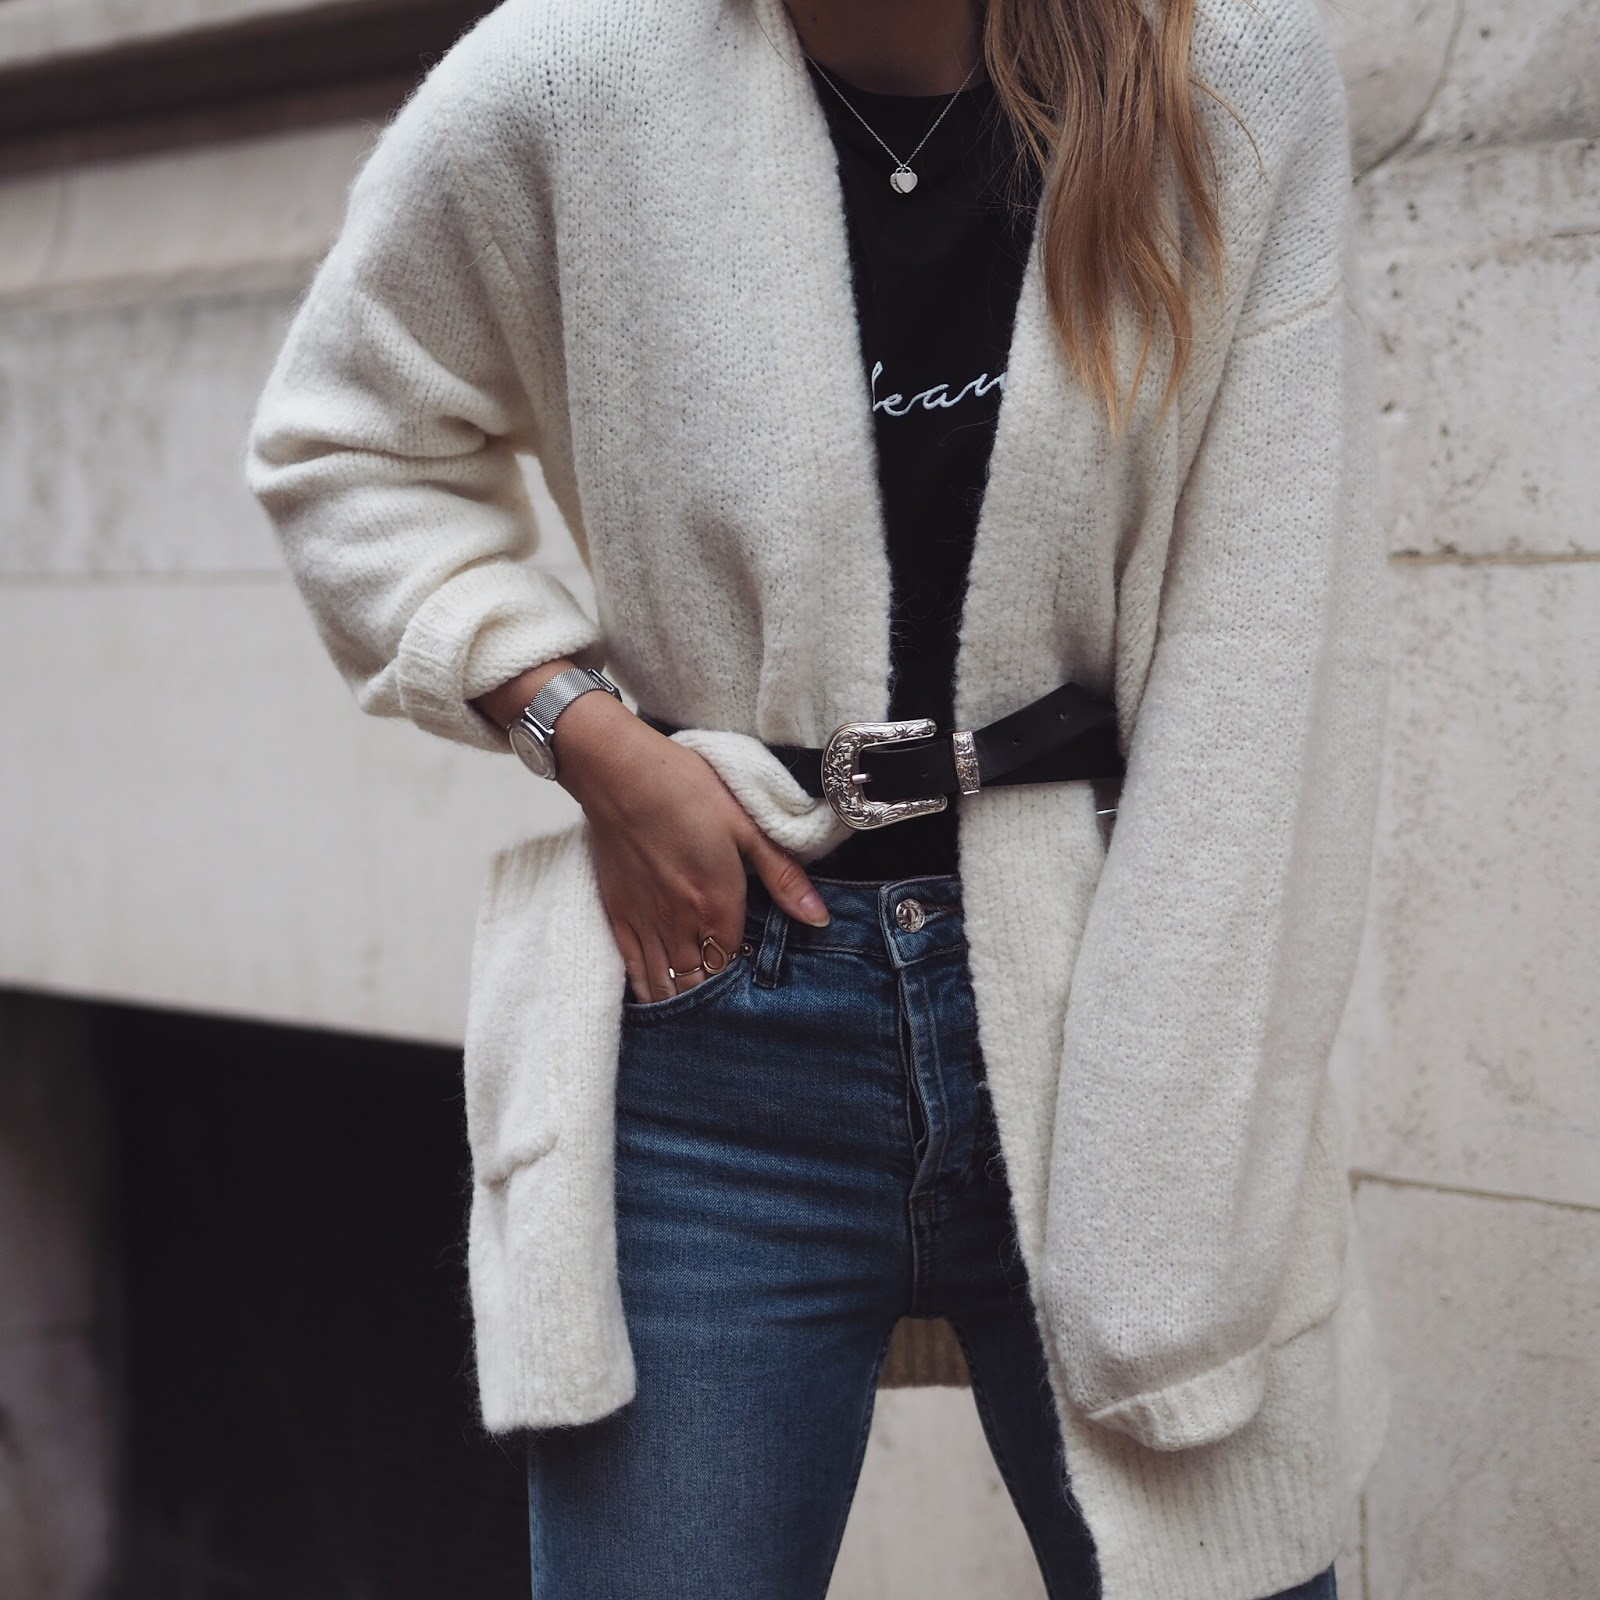 Style file 4 . | The perfect outfit for when you want to ditch the coat!